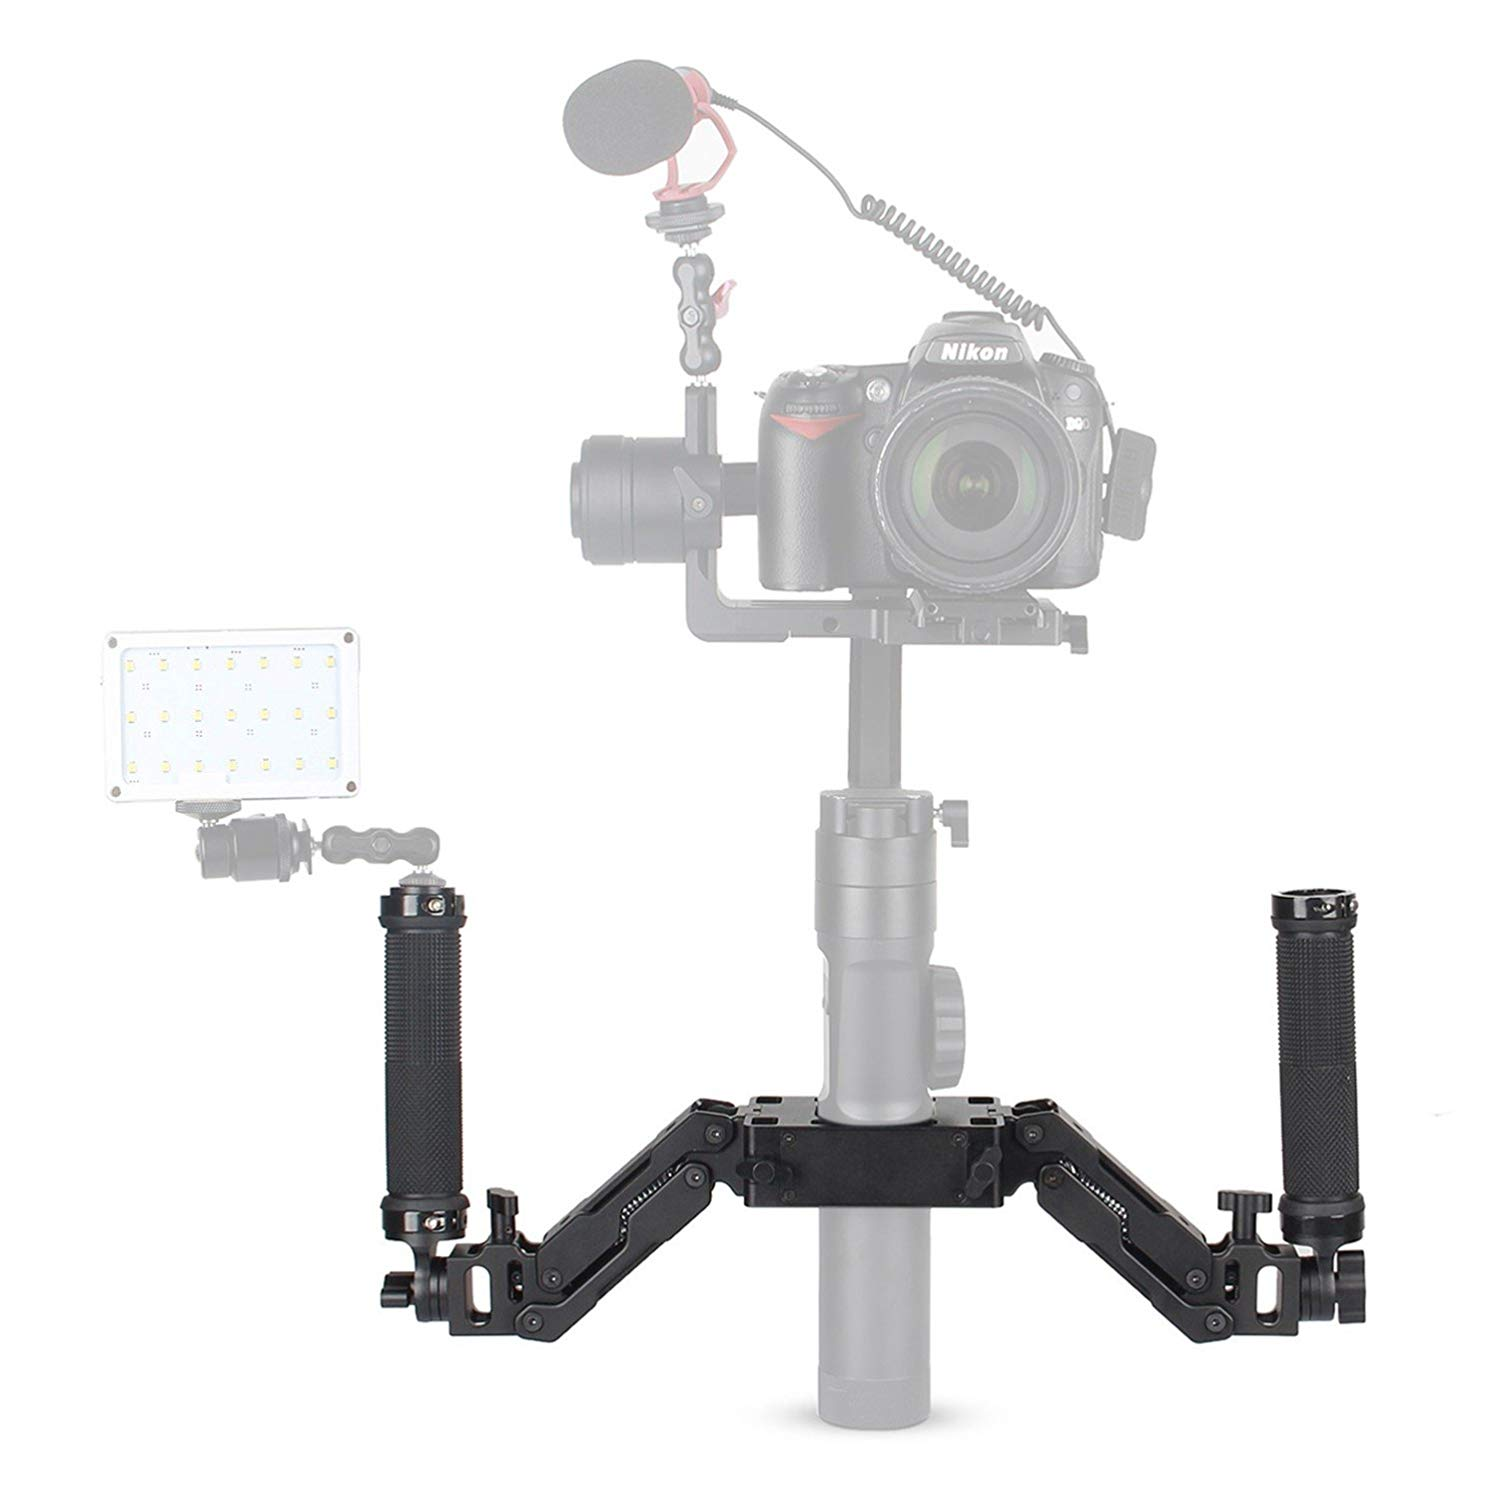 Dual Handle Stabilizers for DJI Roin S w//Gimbal Stabilizer Grip Handheld Kit US